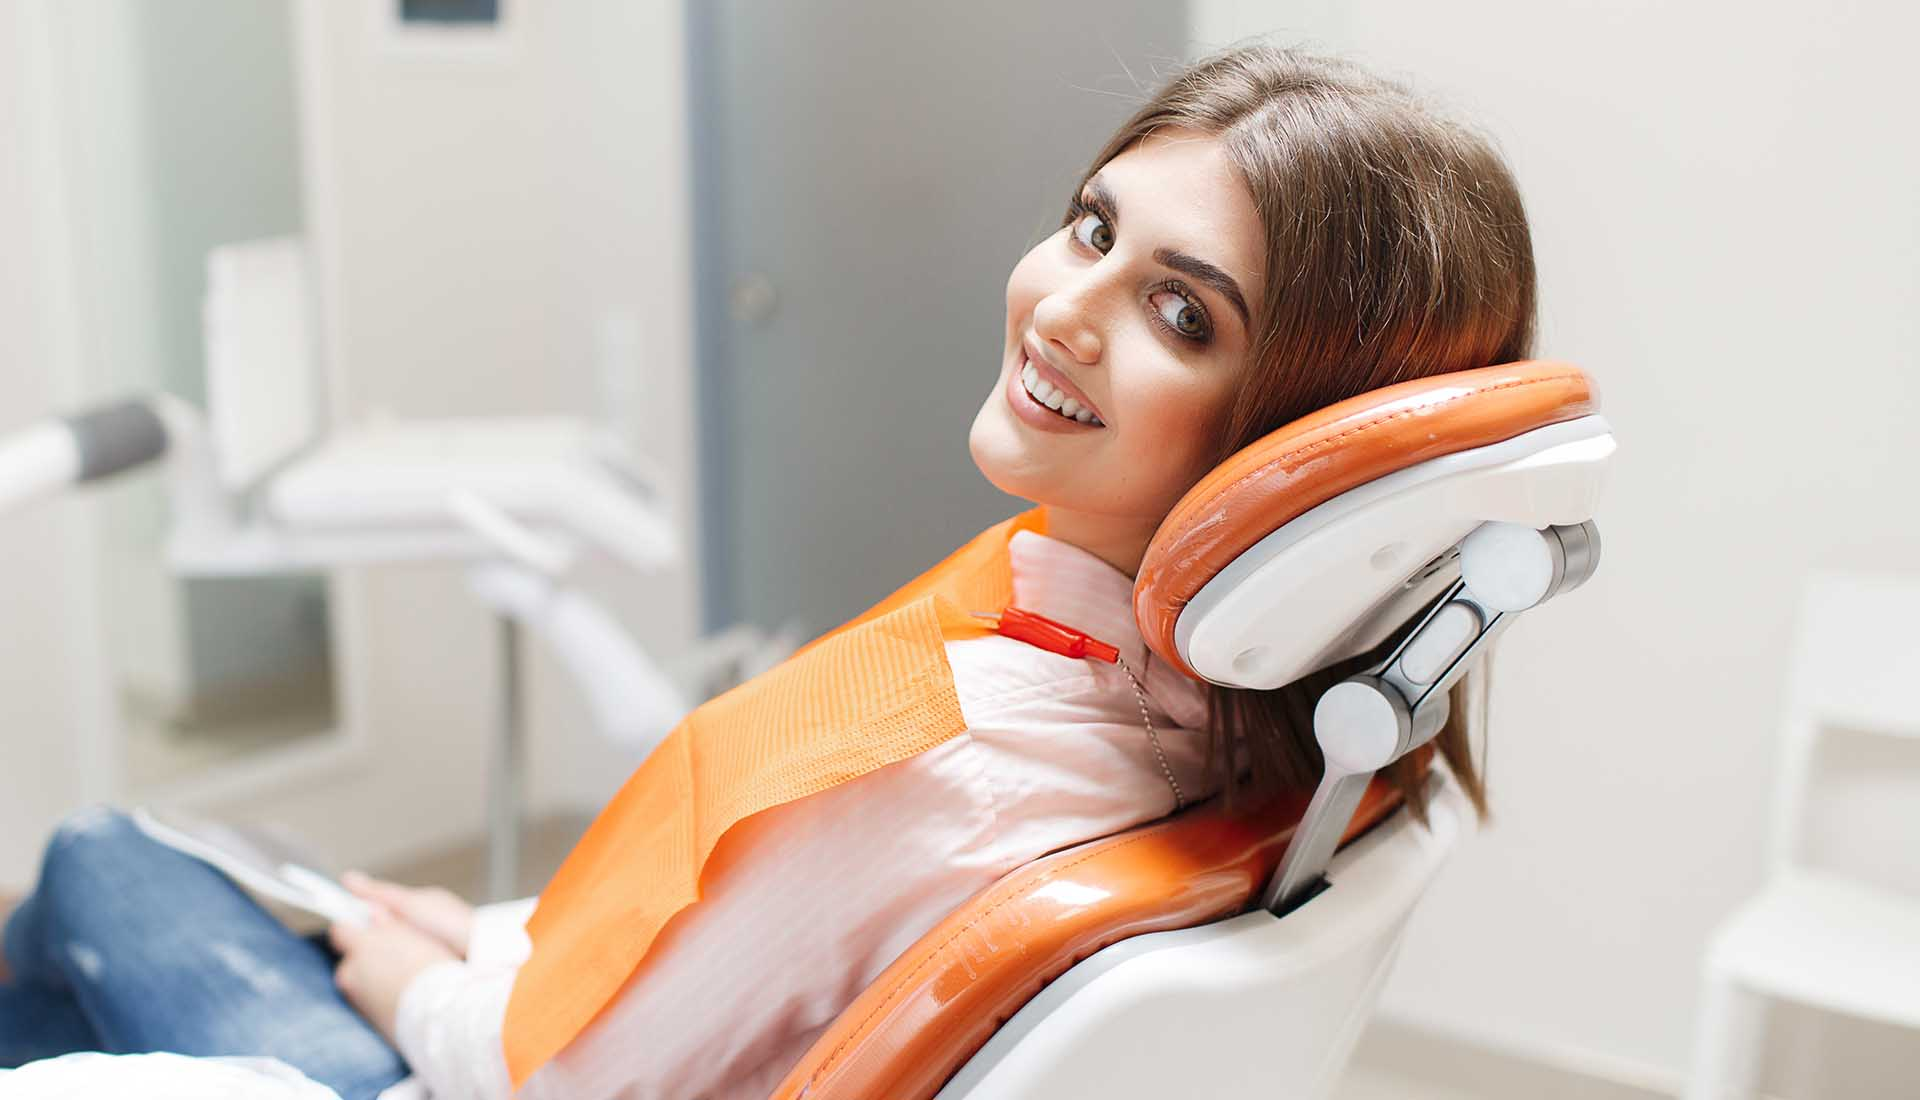 happy young woman in a dental chair after dental checkup and cleaning